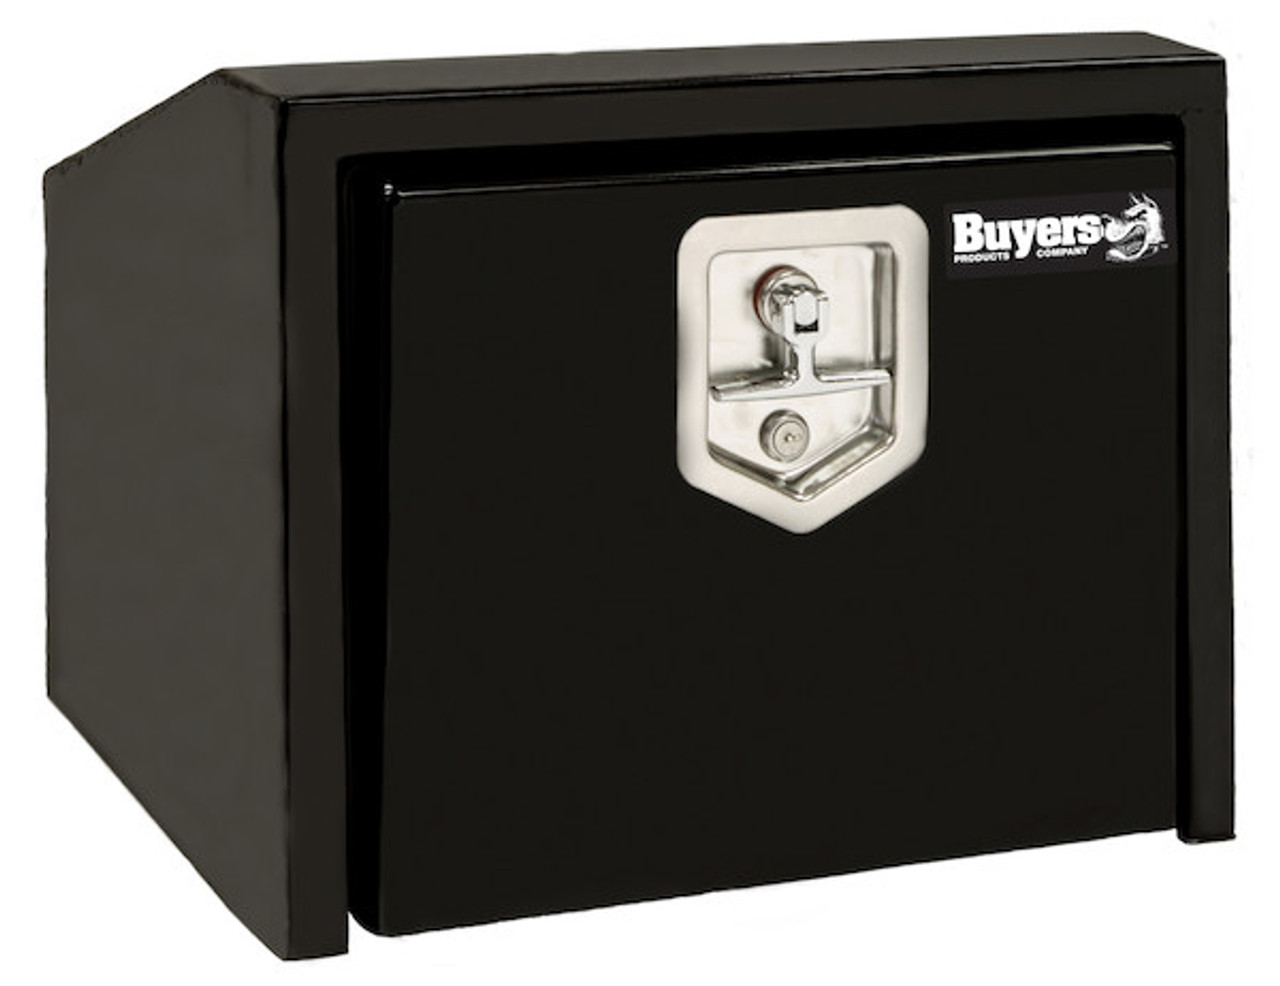 """1703355 BUYERS PRODUCTS BLACK STEEL UNDERBODY TRUCK TOOLBOX WITH SLANTED BACK 14""""HX12""""DX30""""W"""